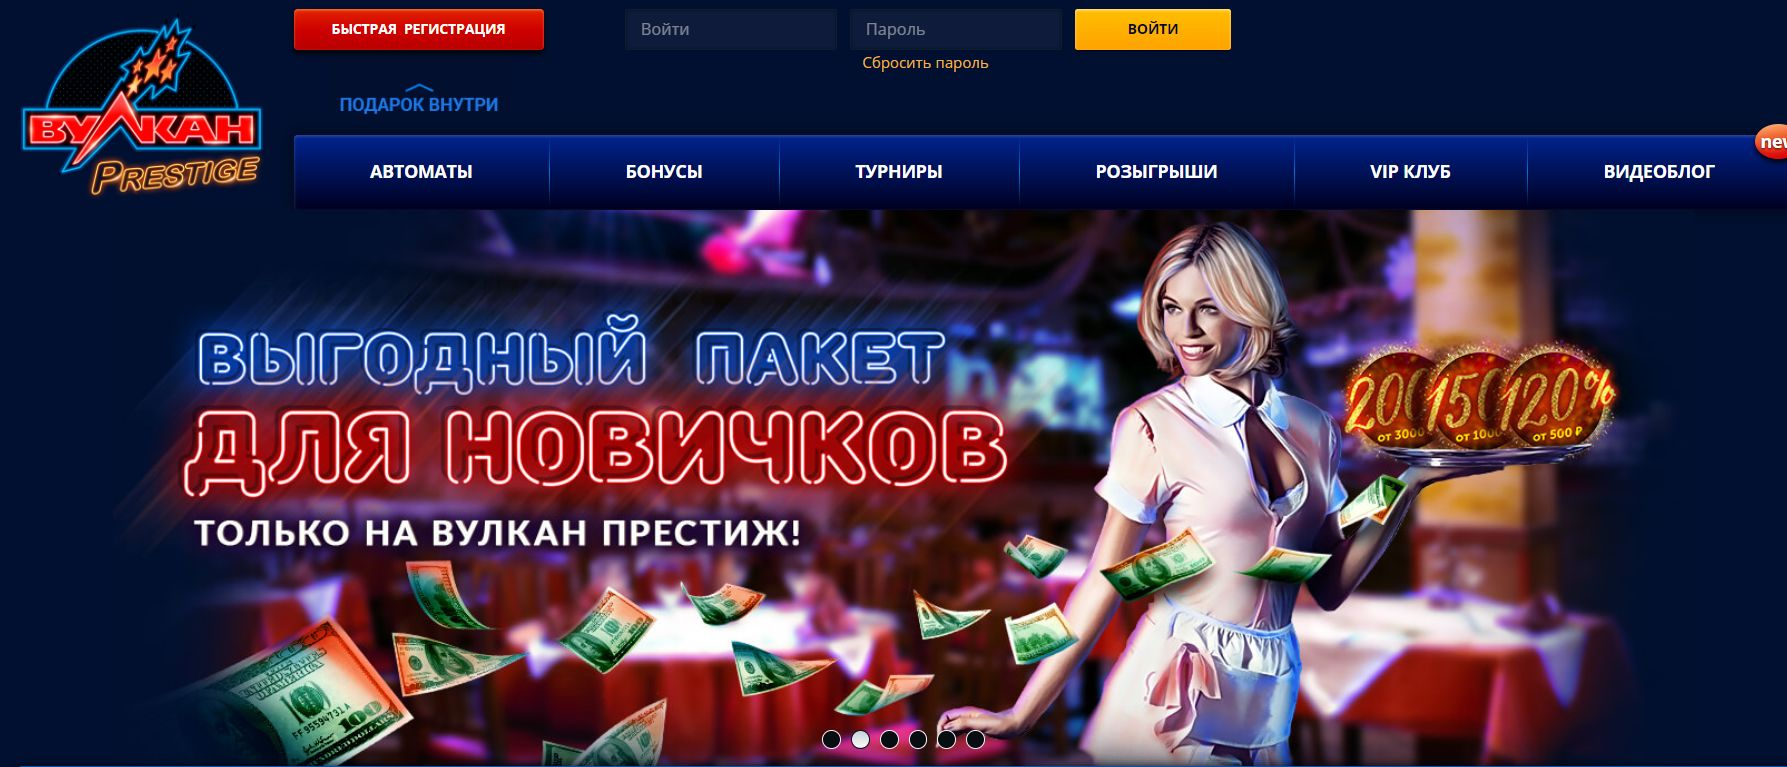 вулкан престиж казино casino player ru